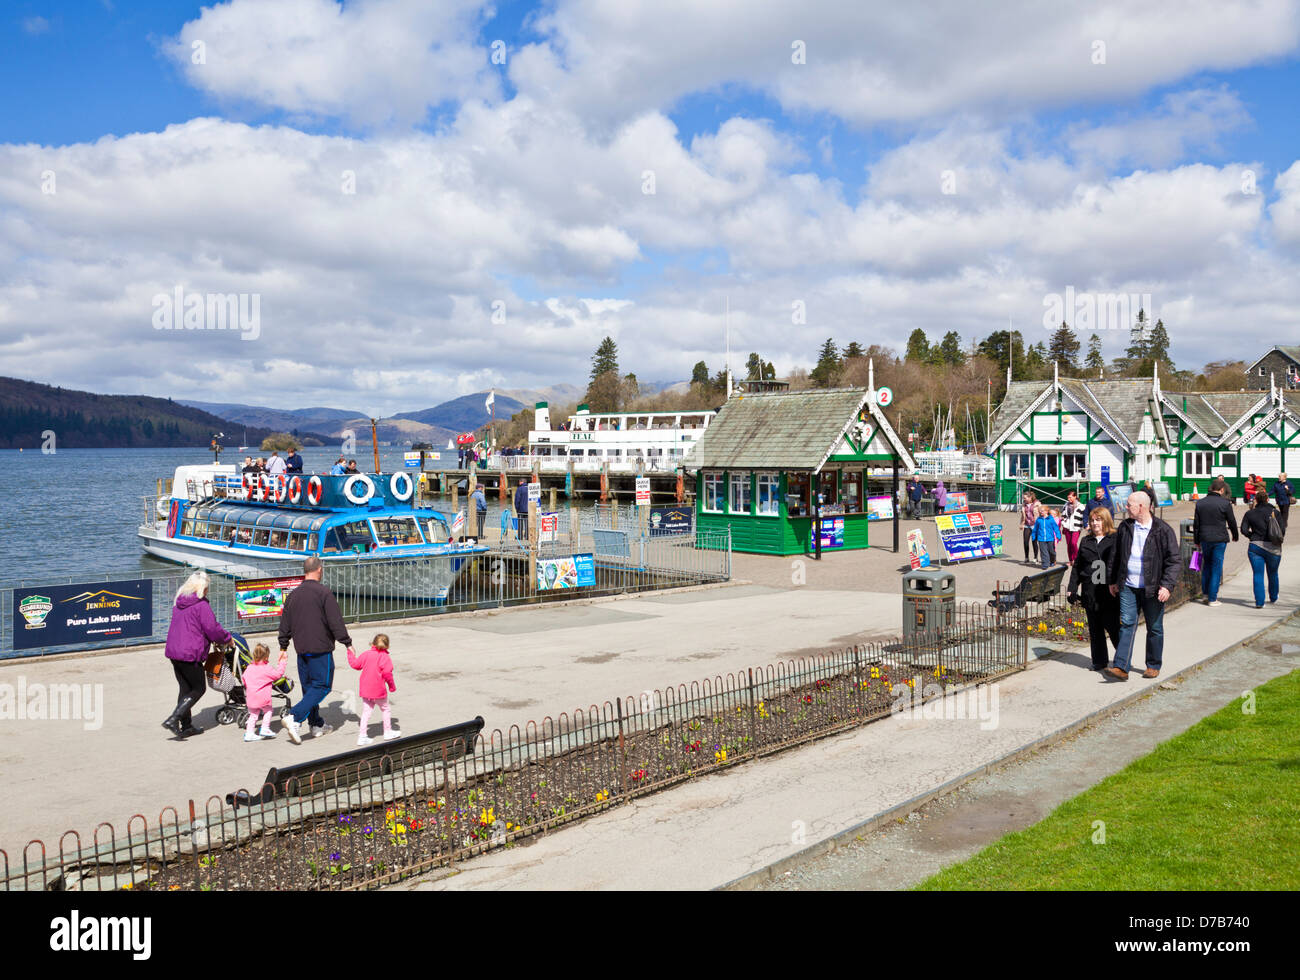 Steamer and lake cruises booking office Lake windermere at Bowness on windermere Cumbria Lake district England UK - Stock Image